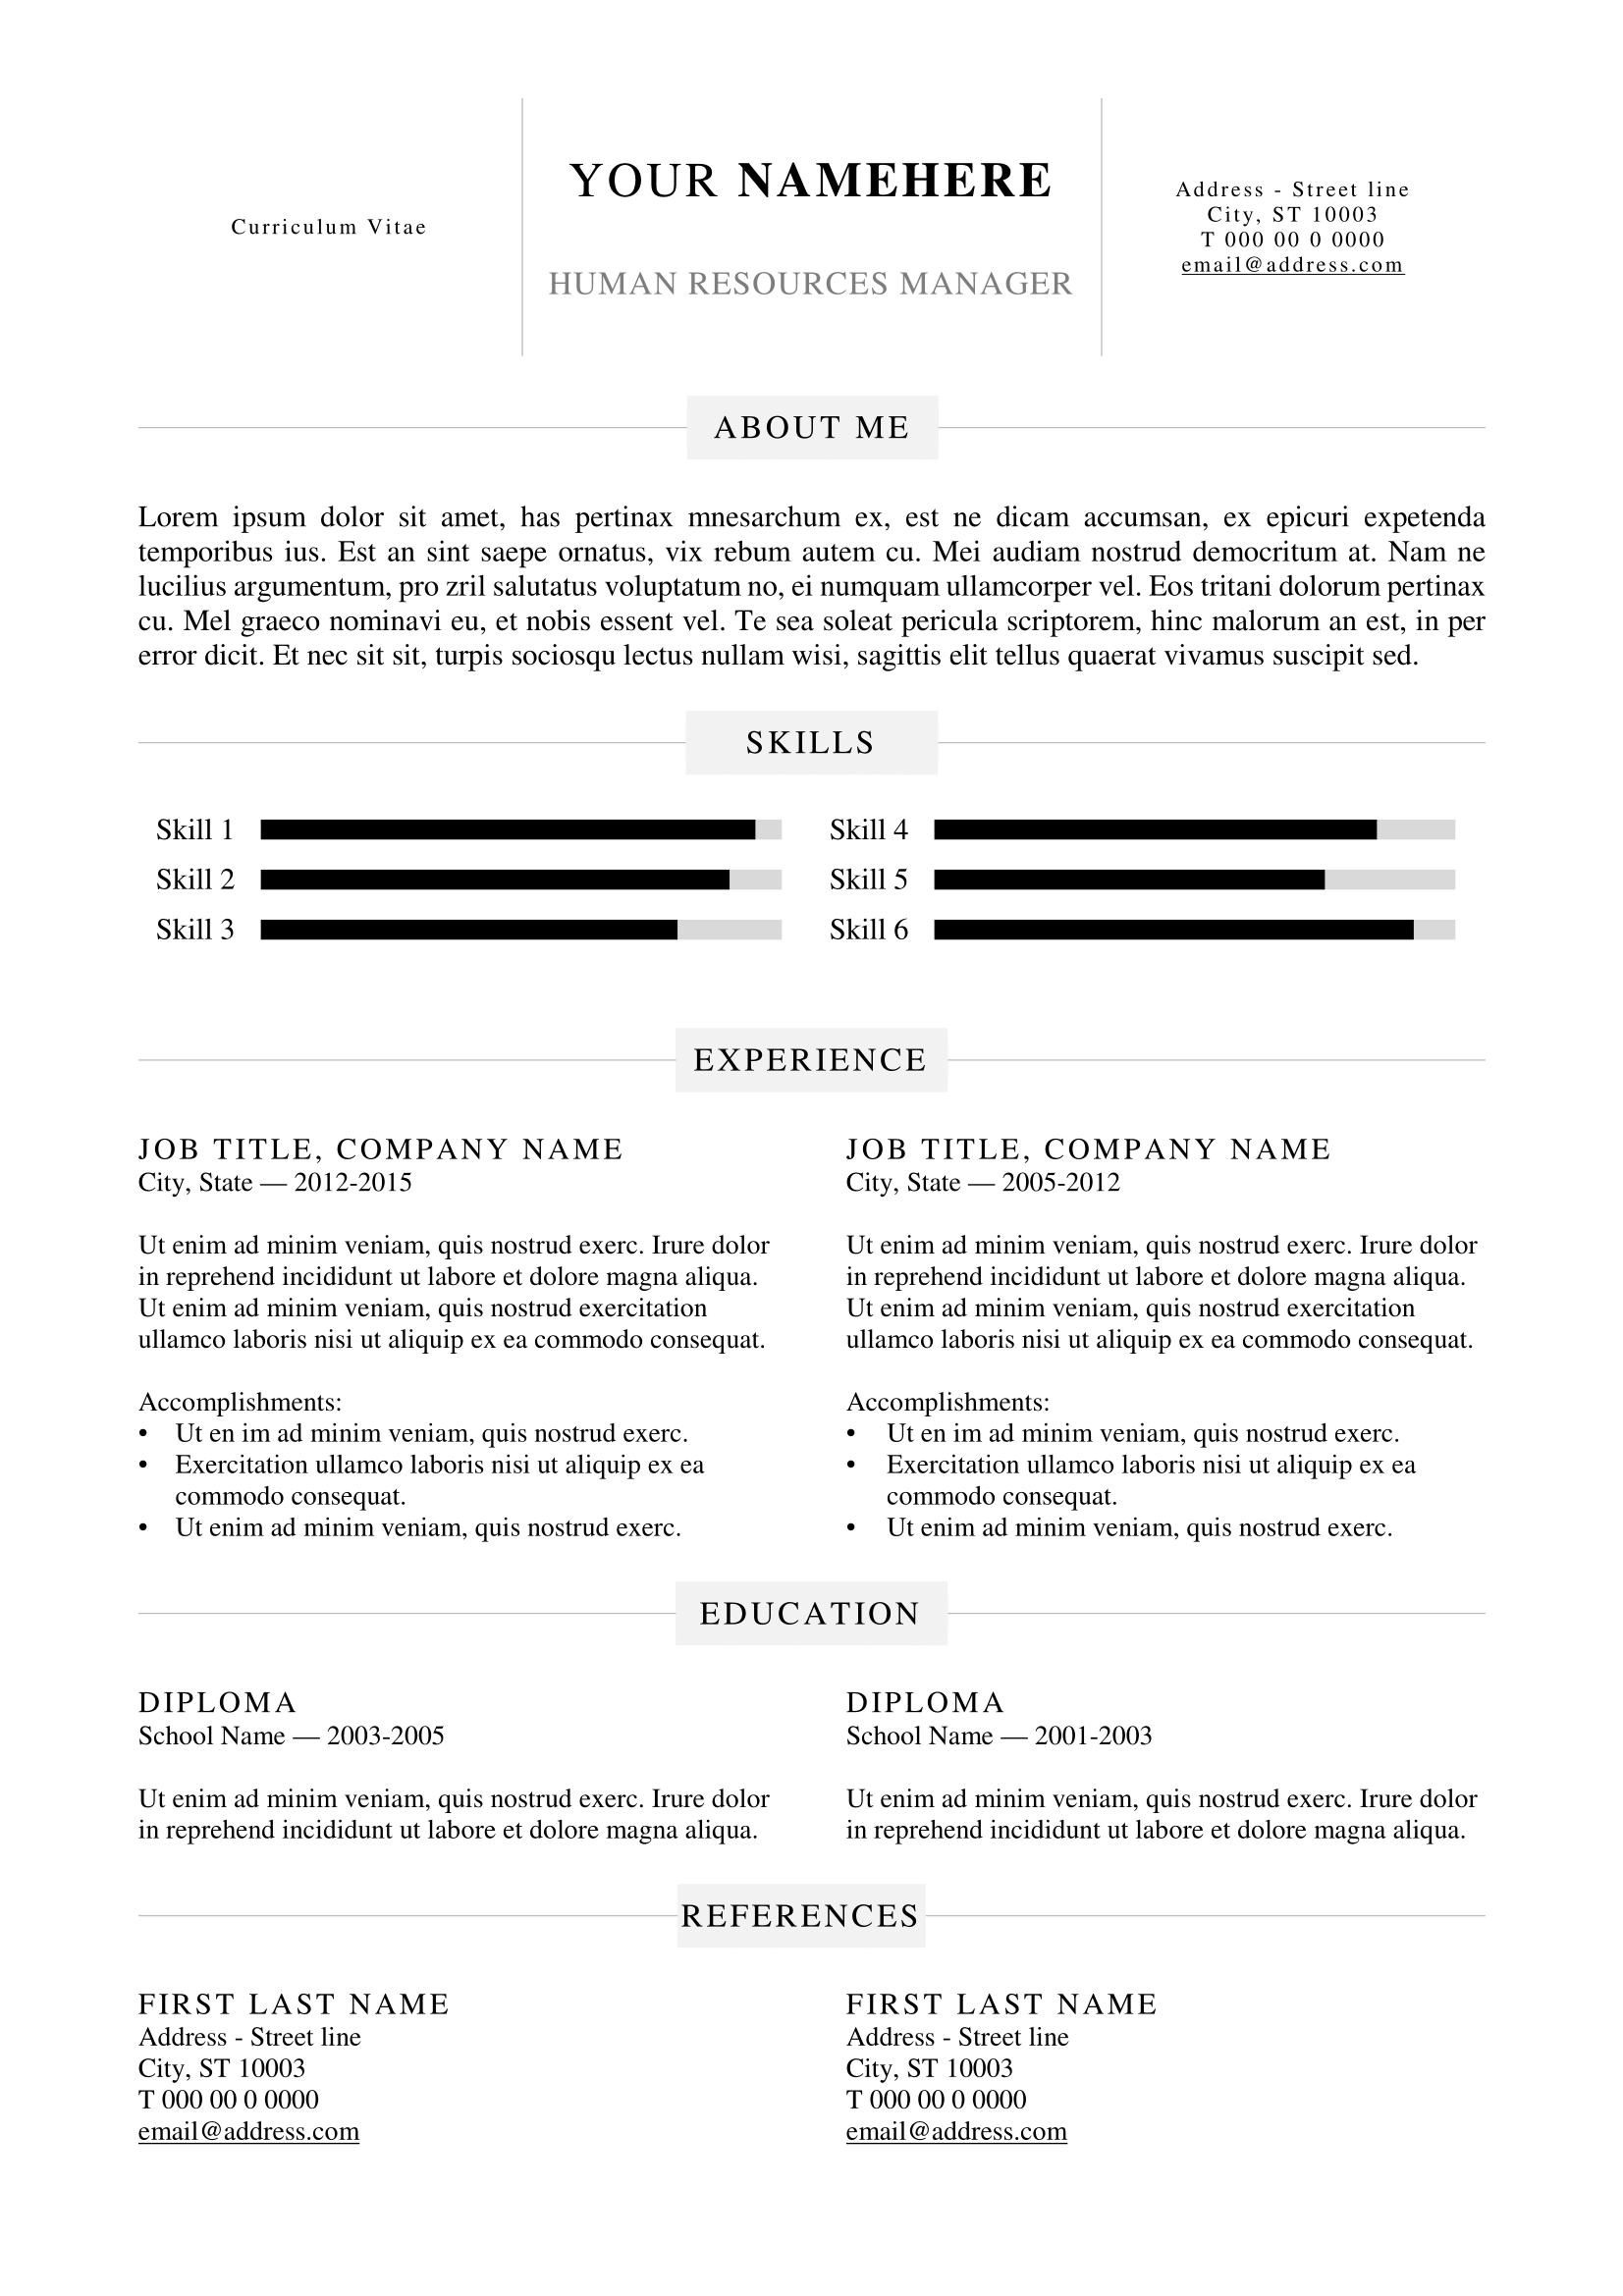 kallio free simple resume template for word docx basic resume